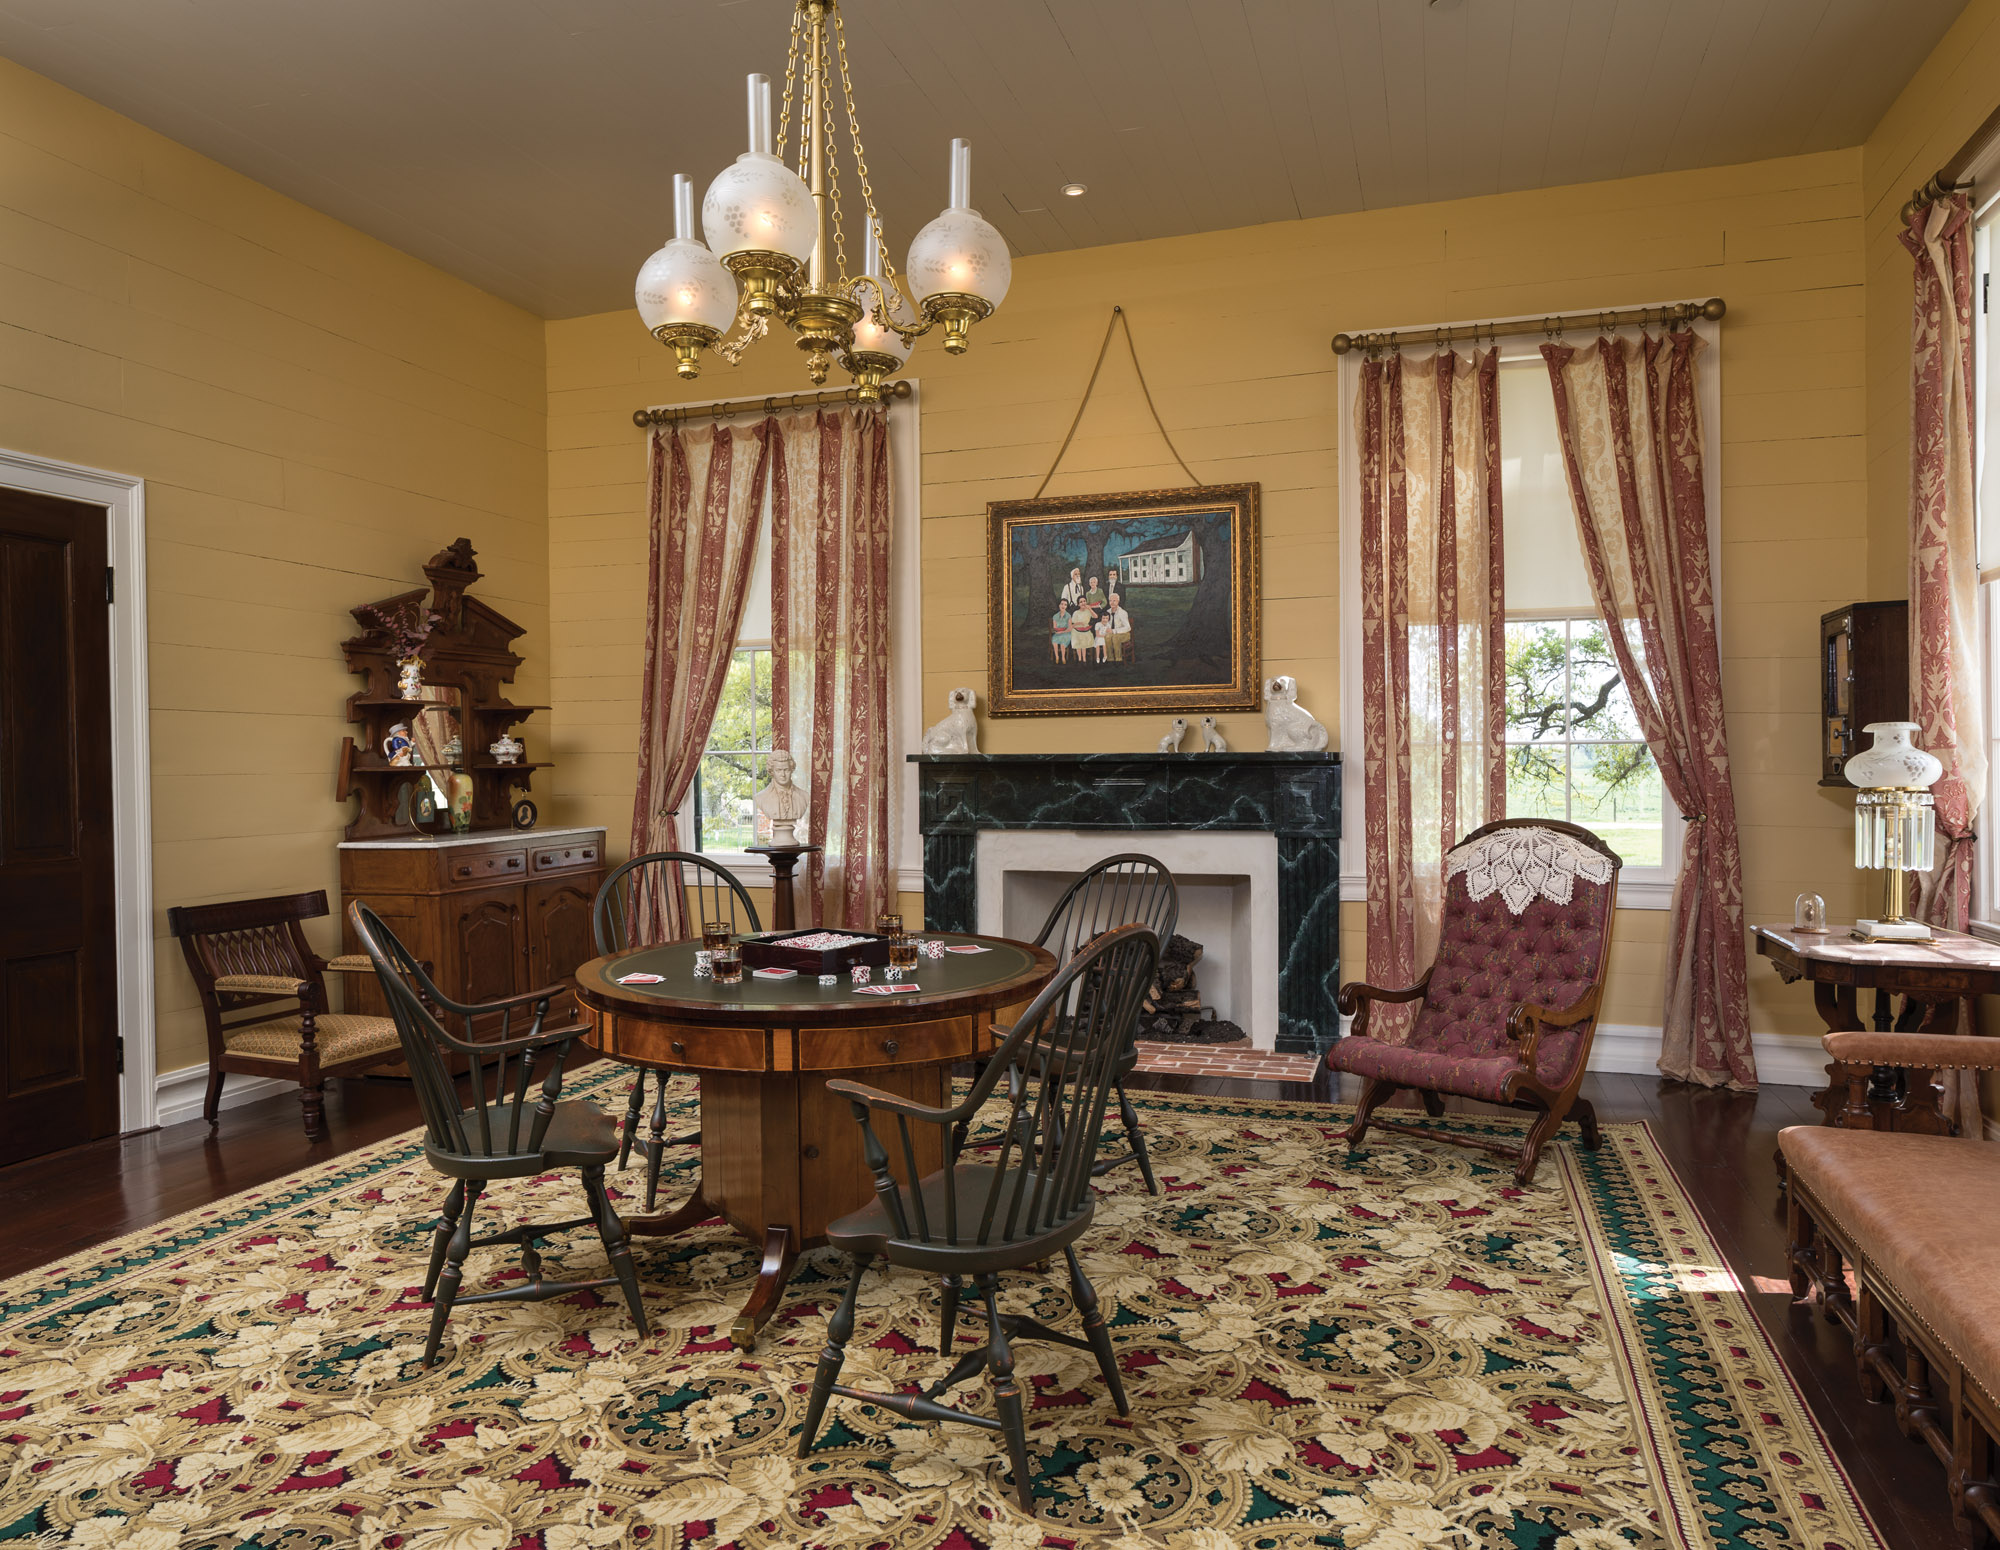 The Gentlemen's Parlor is furnished as a game room. A commissioned painting by contemporary artist George Rodrigue features four generations of Hill ancestors. The chandelier by Jefferson Art Lighting Co. reproduces an 1850s  brass solar fixture.